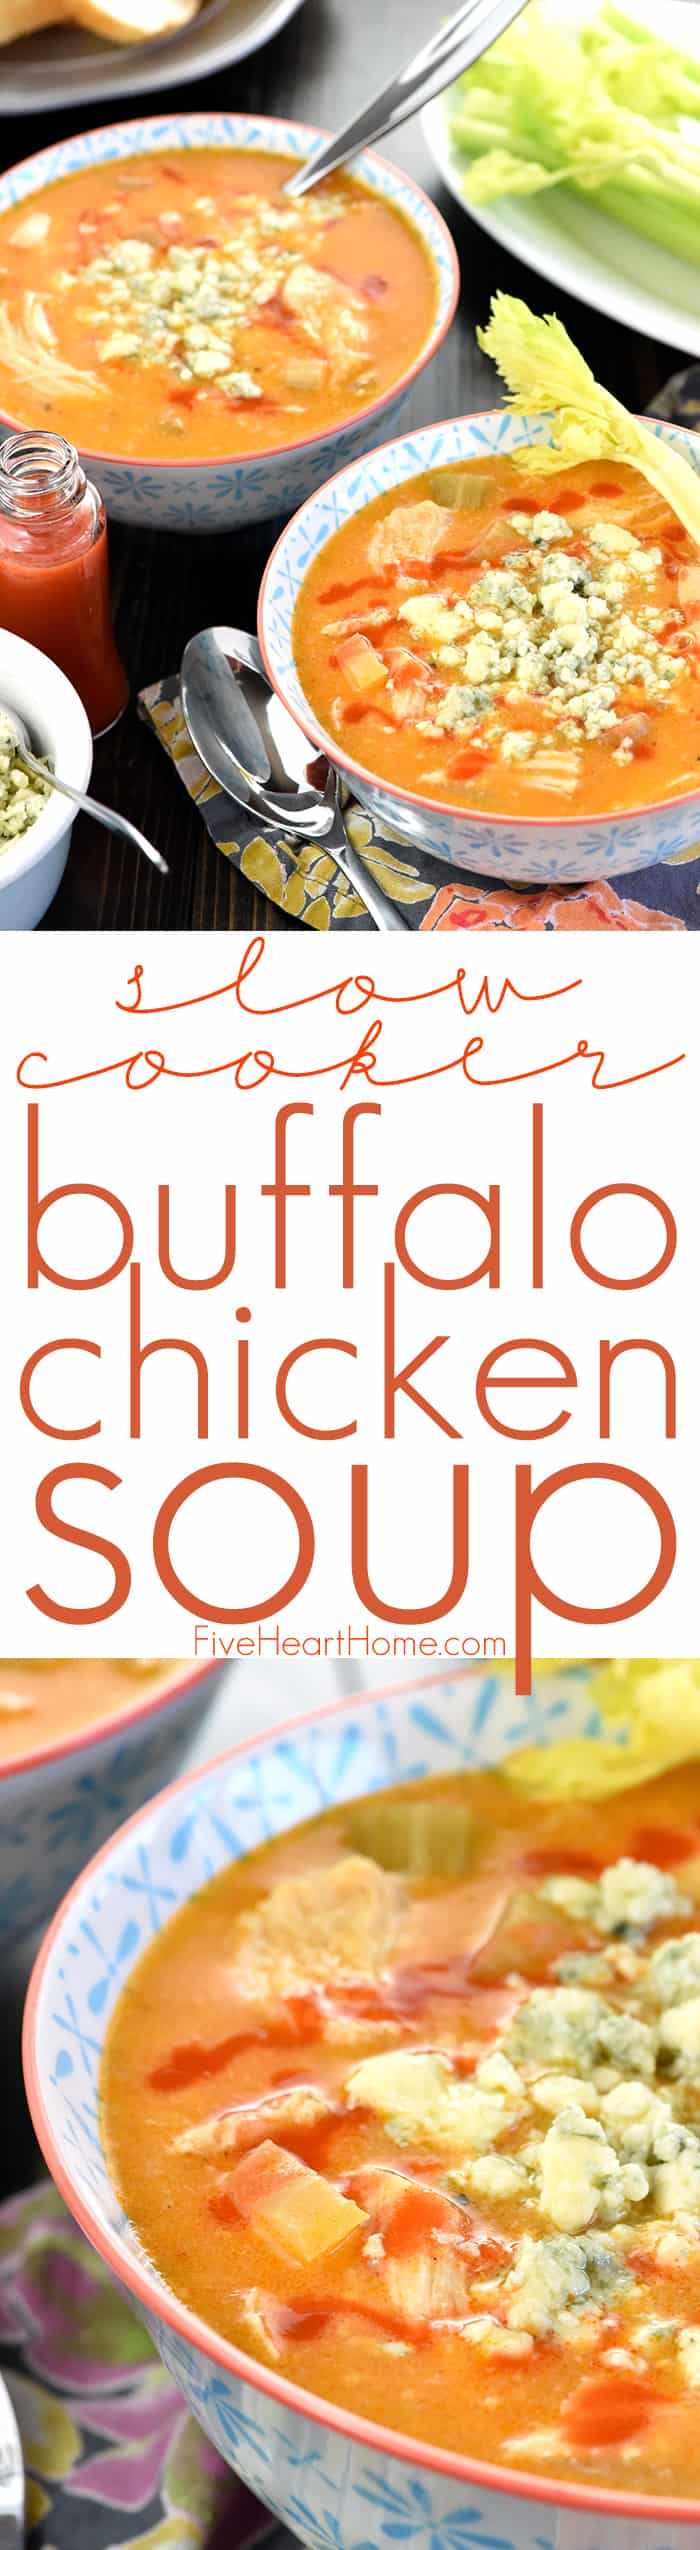 Slow Cooker Buffalo Chicken Soup Collage with Text Overlay